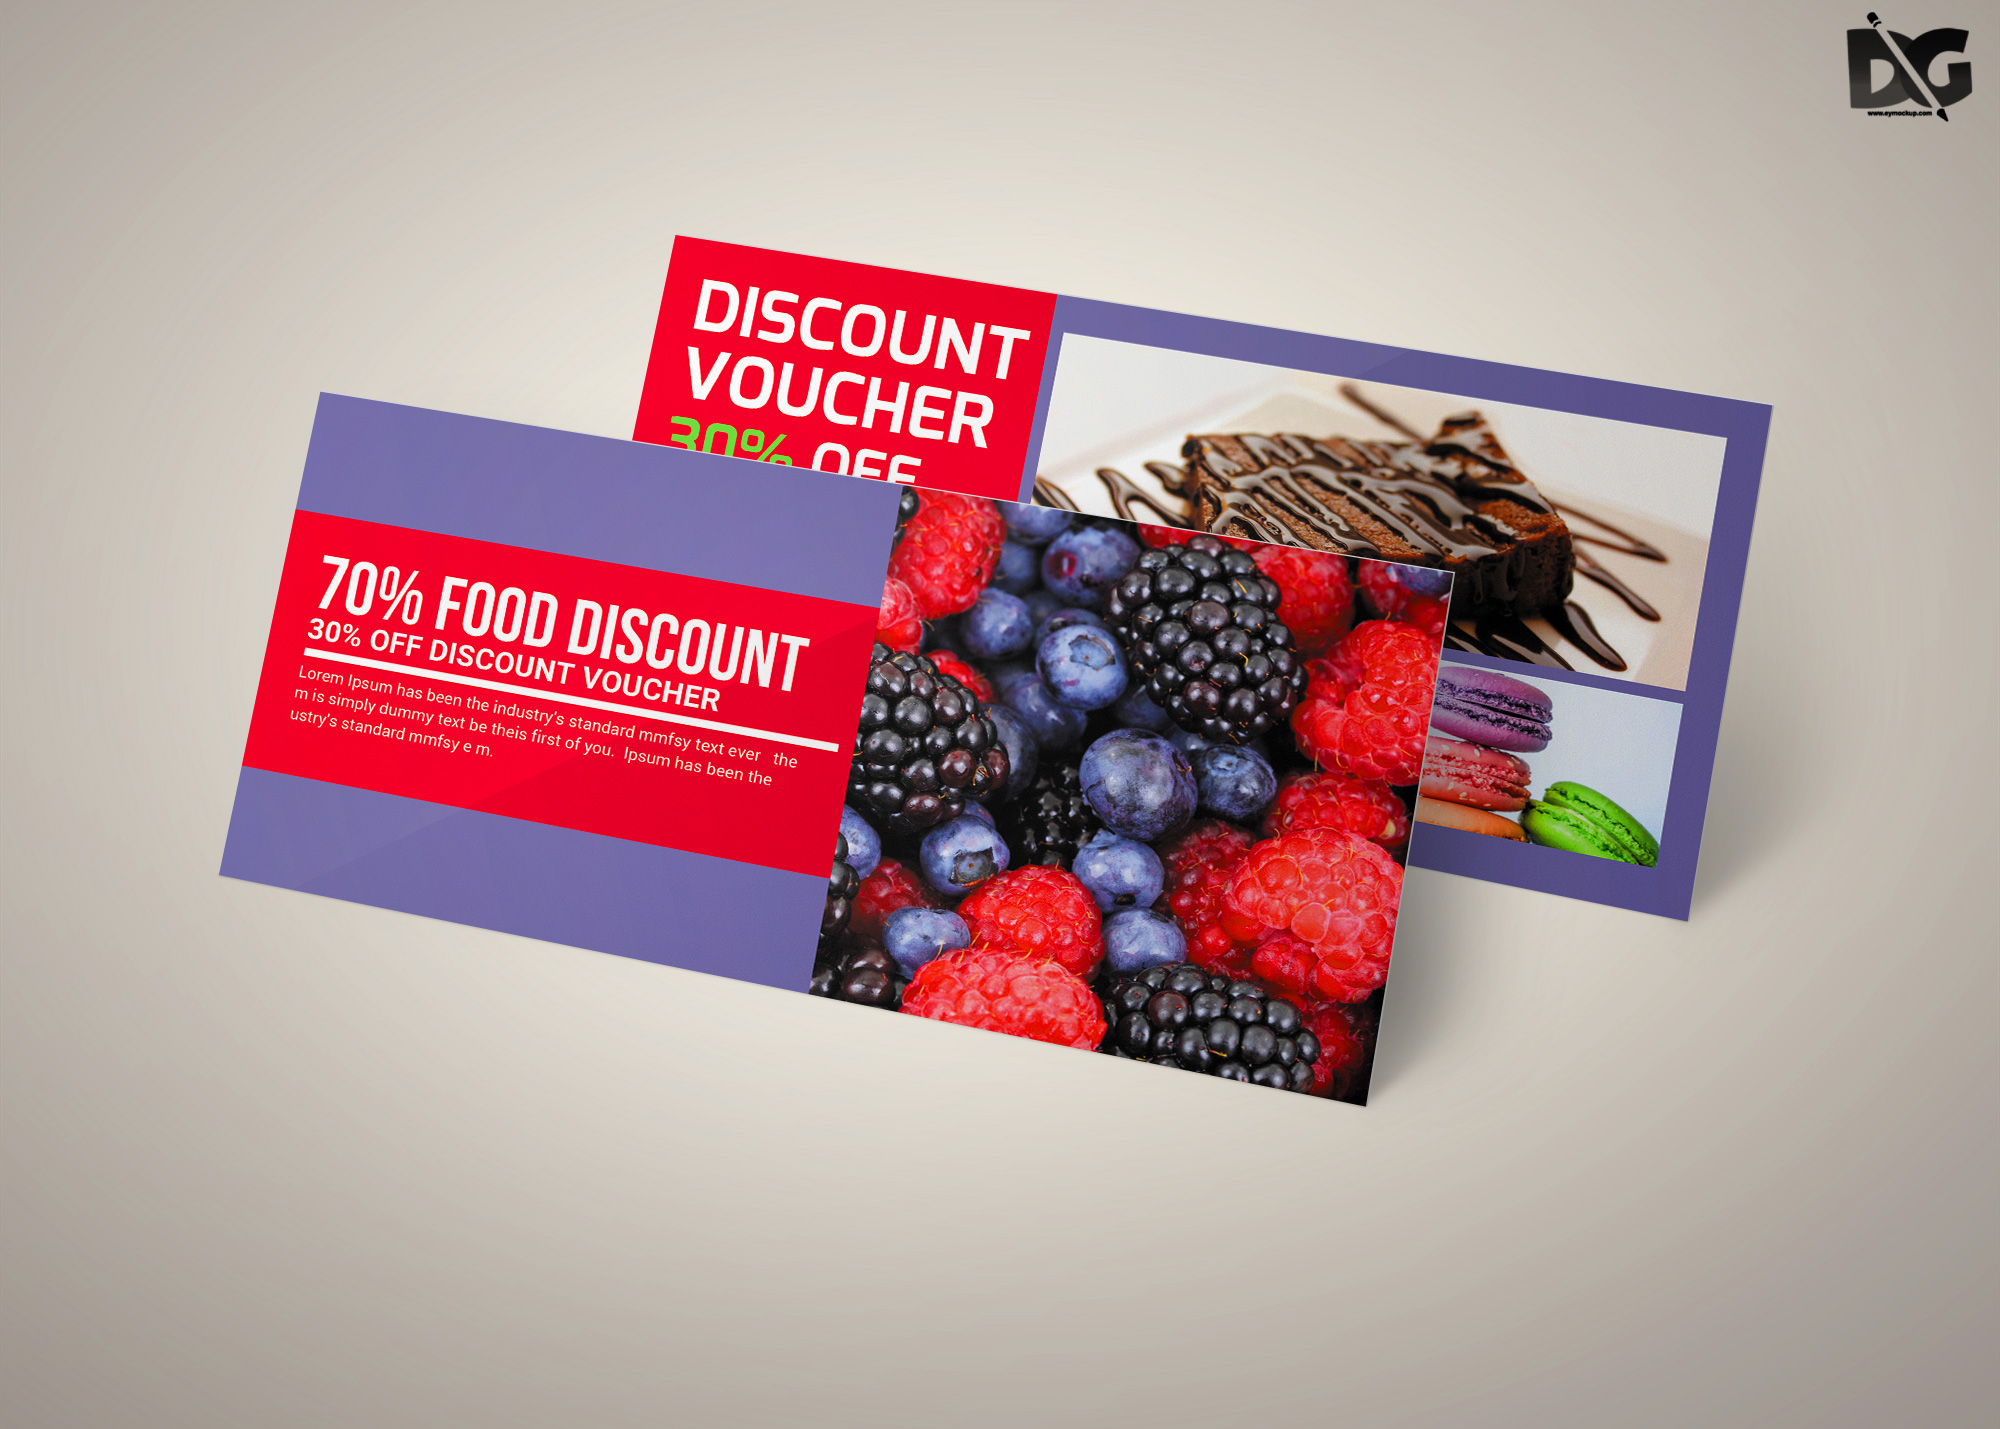 Free Download Fruit Juice Discount PSD Gift Card Template